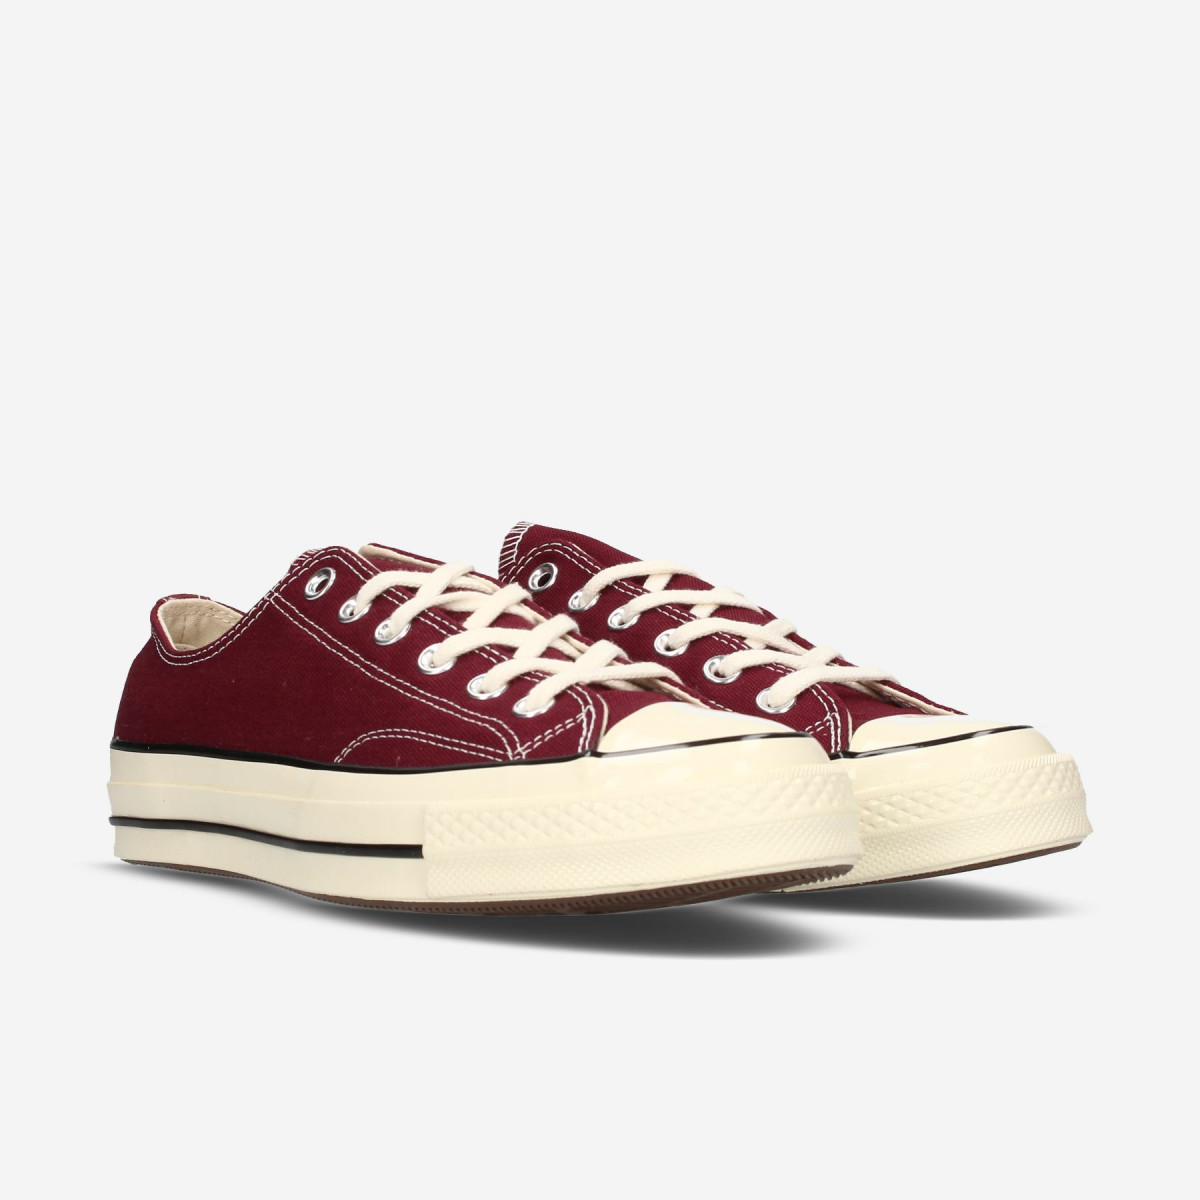 Convers Chuck Taylor All Star '70 Low